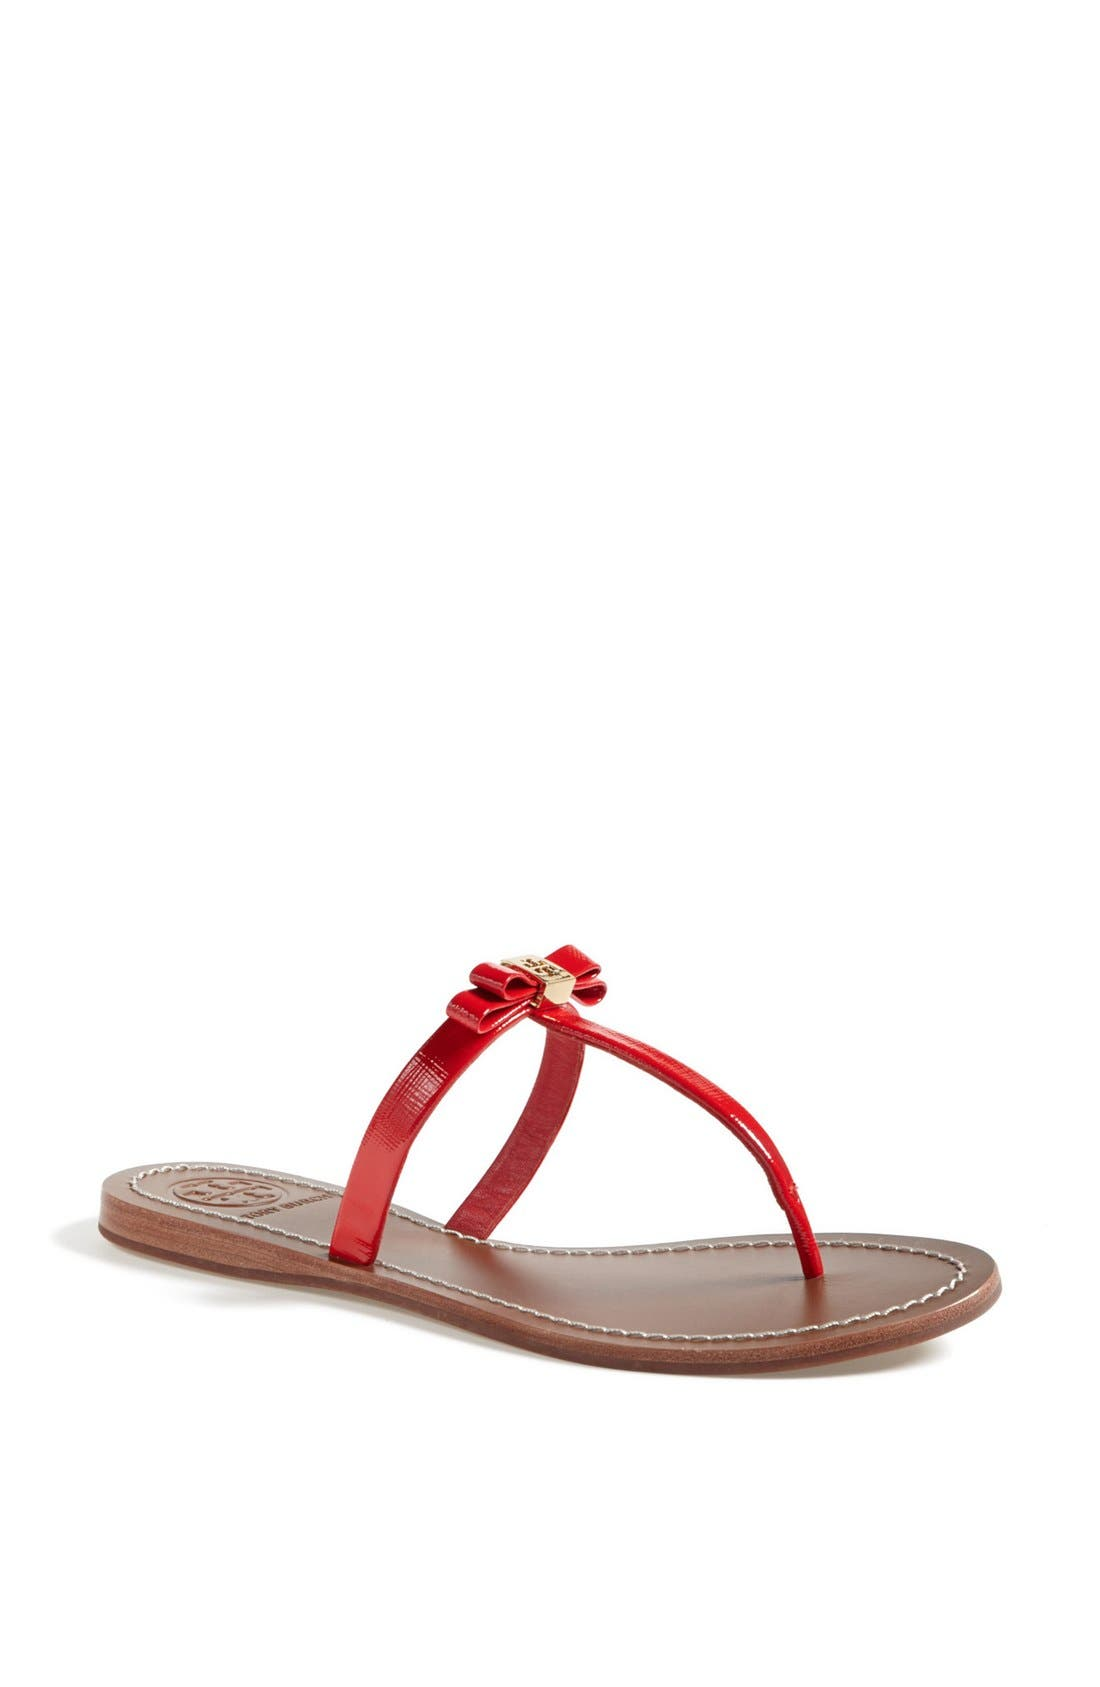 Alternate Image 1 Selected - Tory Burch 'Leighanne' Thong Sandal (Online Only)